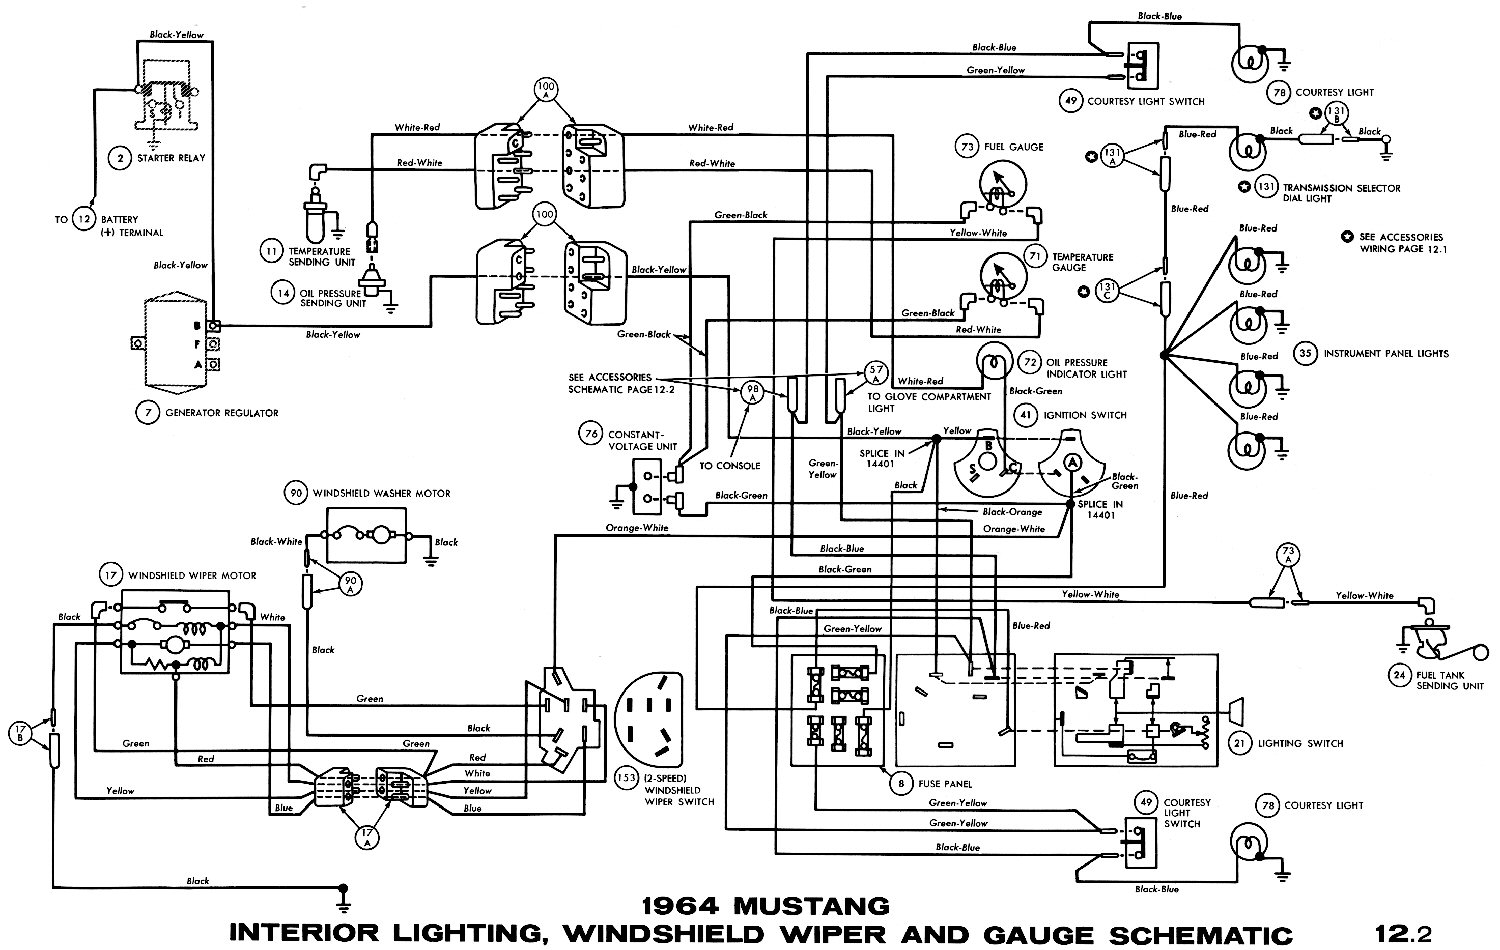 1964k 2014 mustang wiring diagram on 2014 download wirning diagrams 1966 mustang fuse box at n-0.co